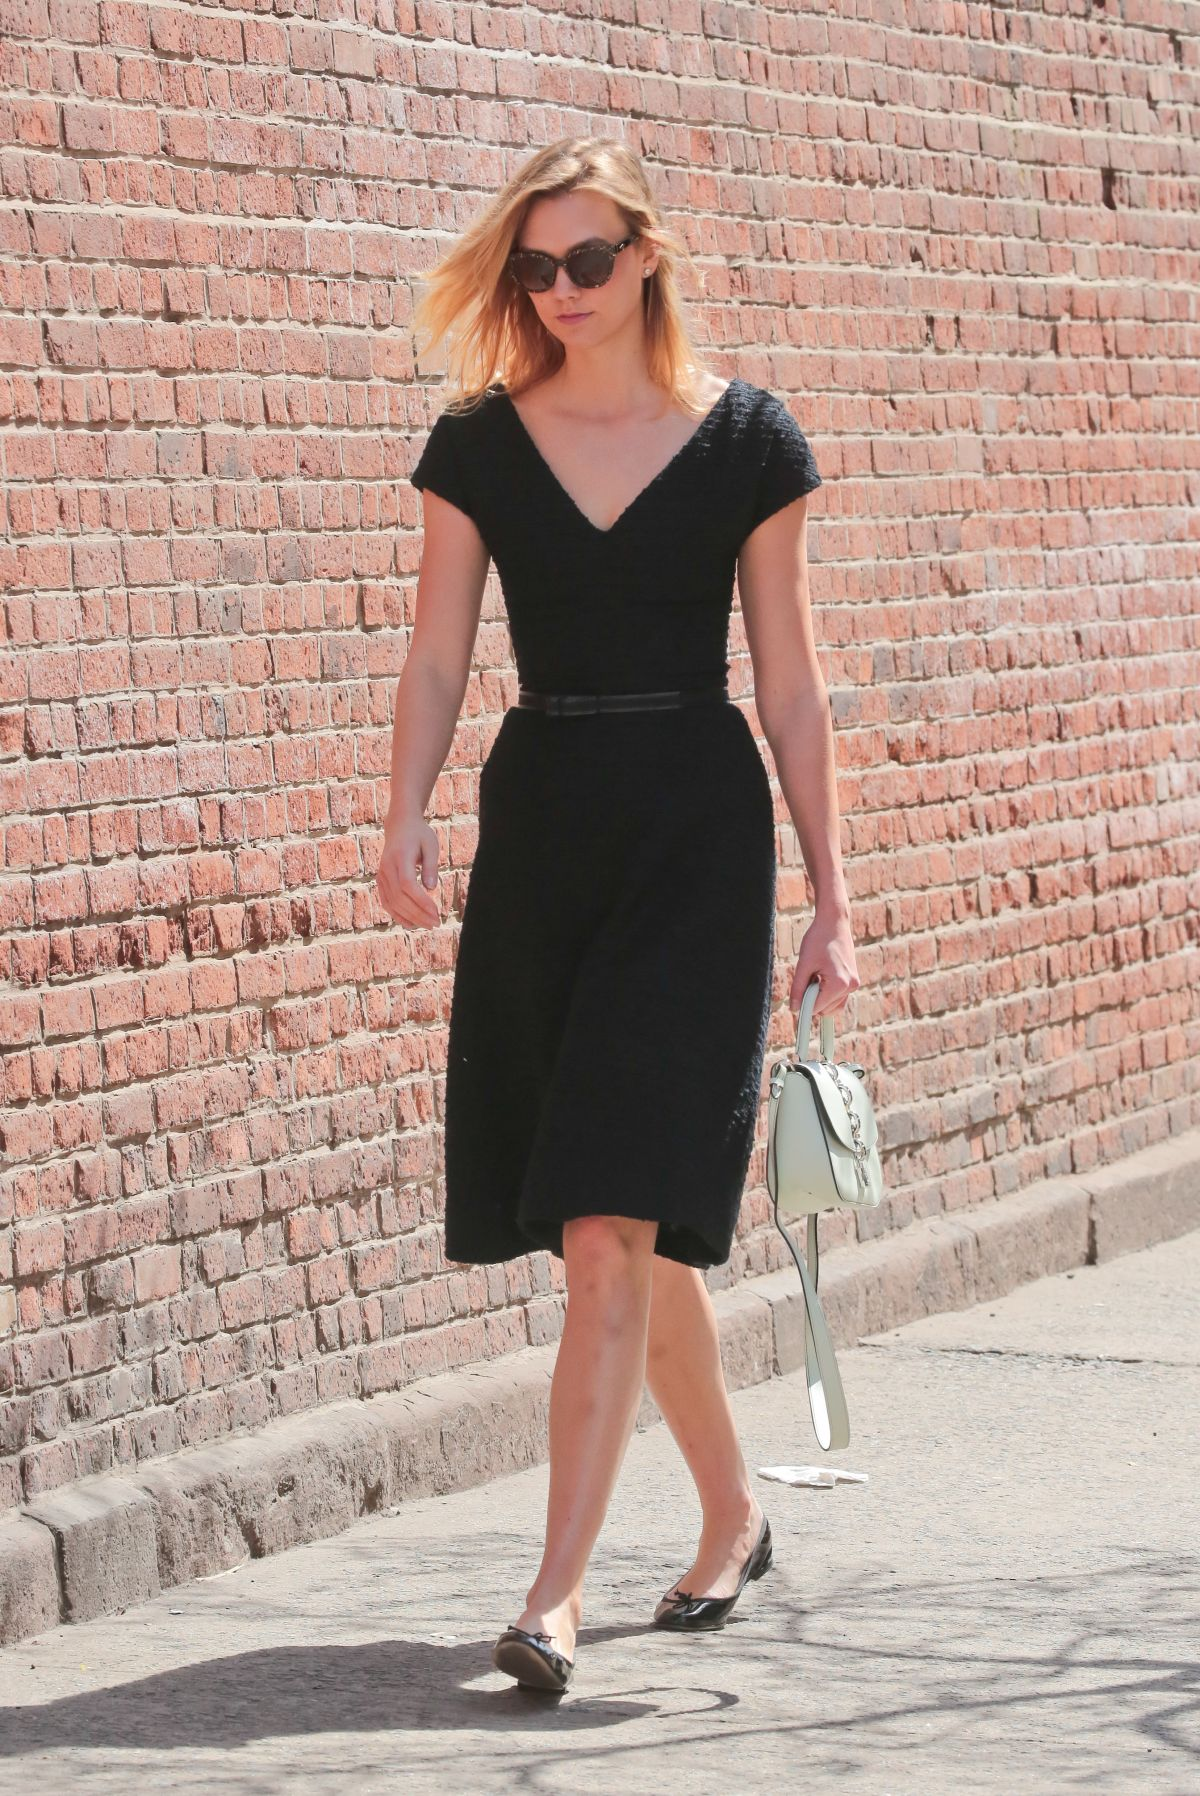 KARLIE KLOSS in Black Dress Out in New York 04/11/2017